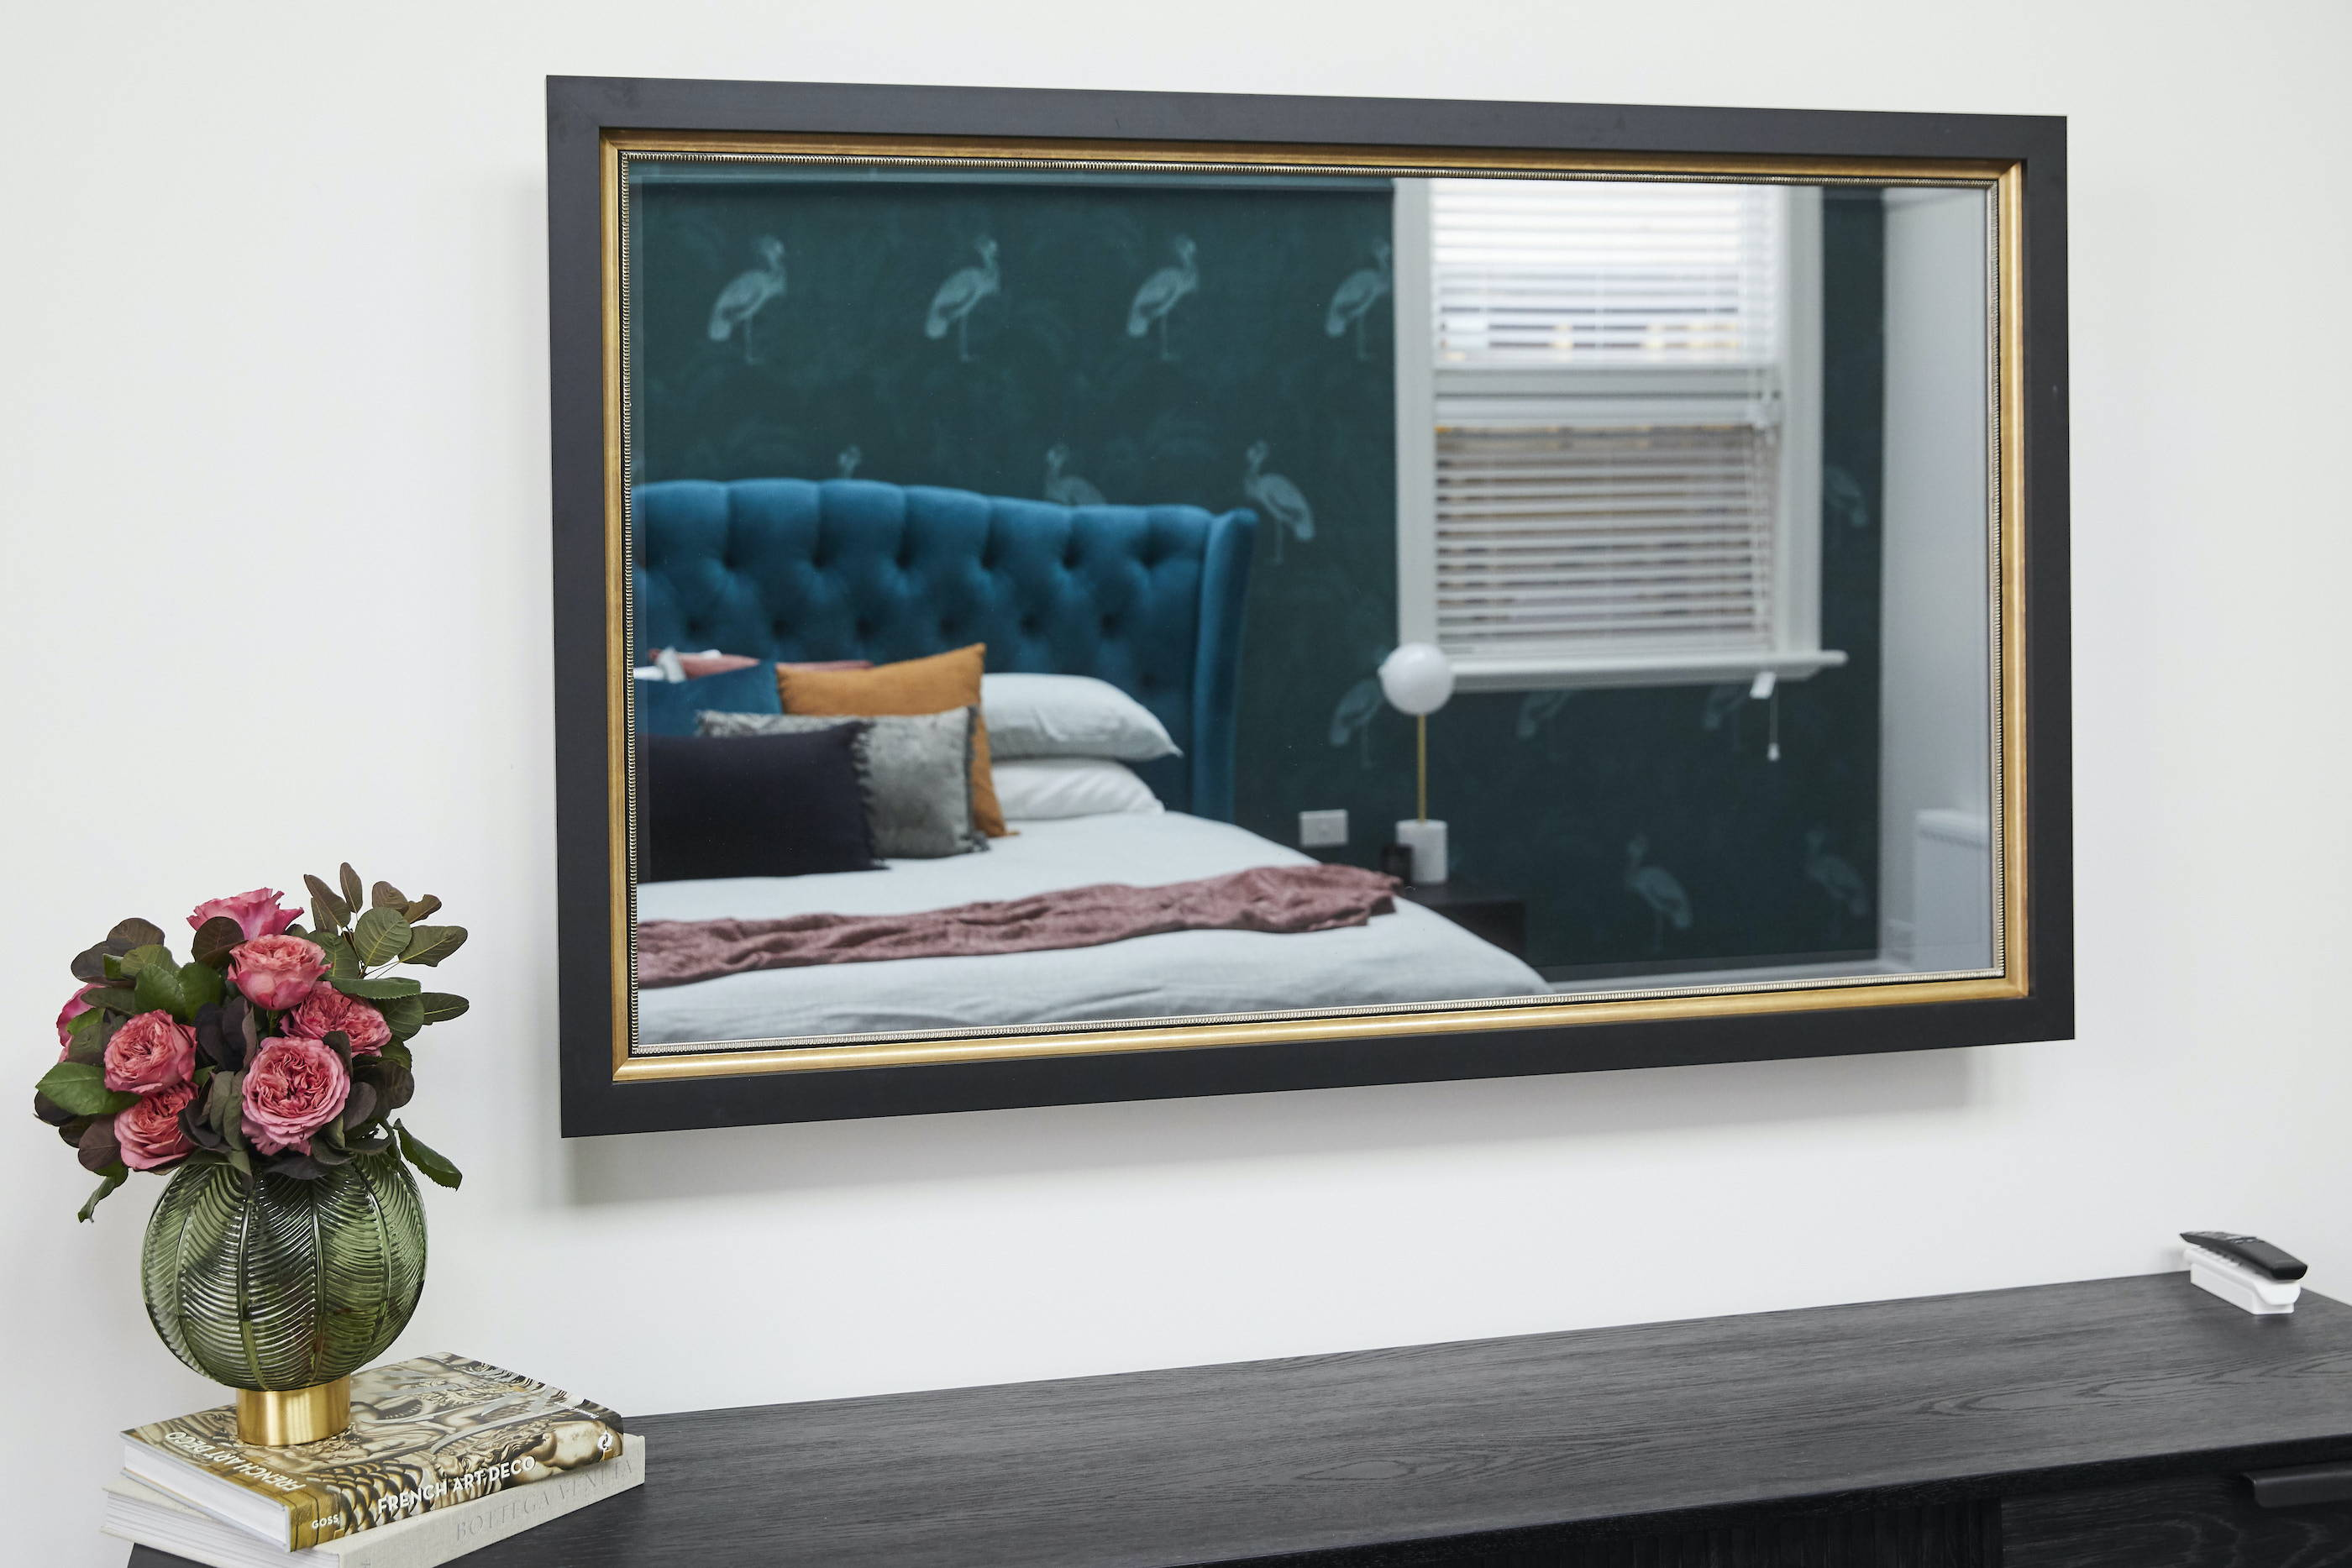 A close up TV-Mirror in a bedroom, reflecting a patterned wallpaper and velvet bedhead